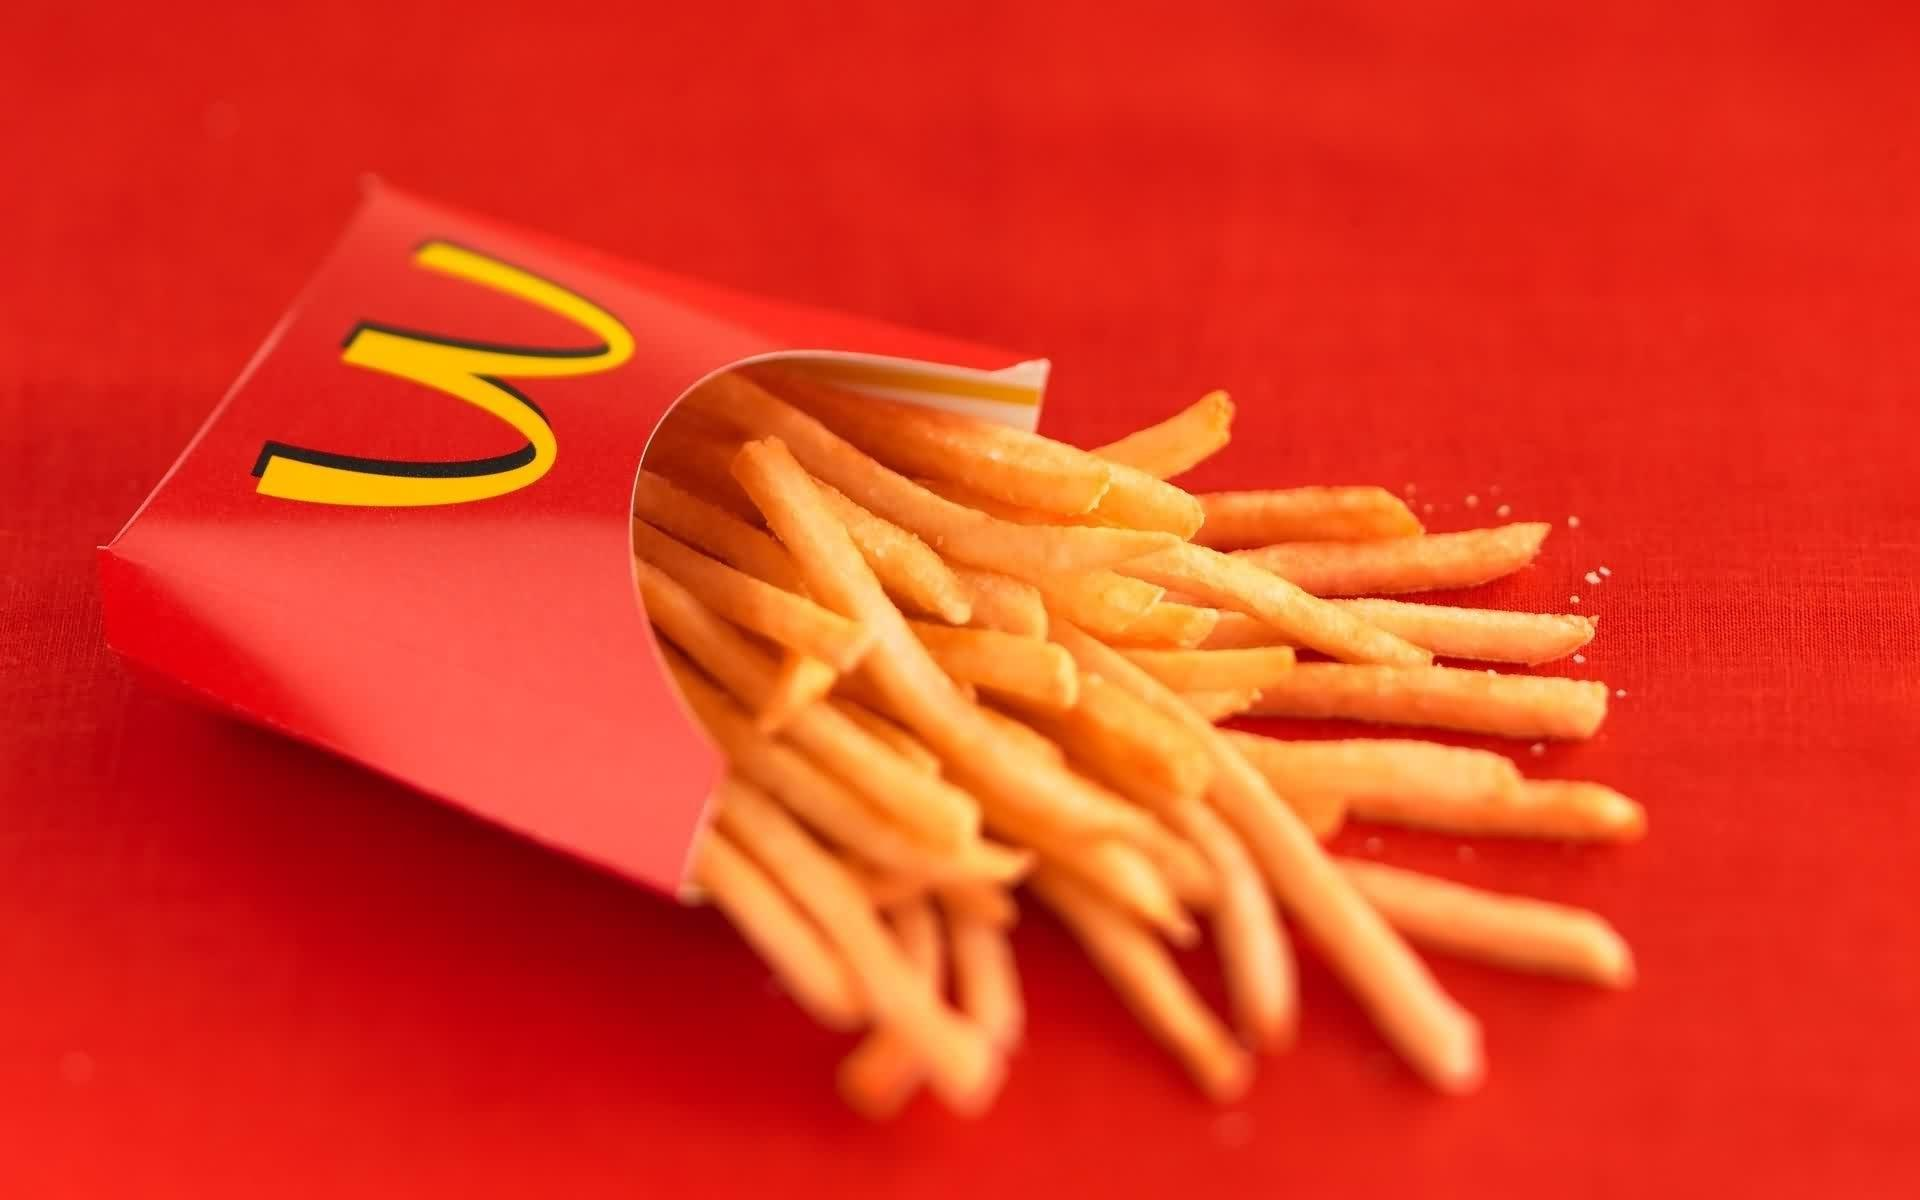 mcdonalds_french_fries_food